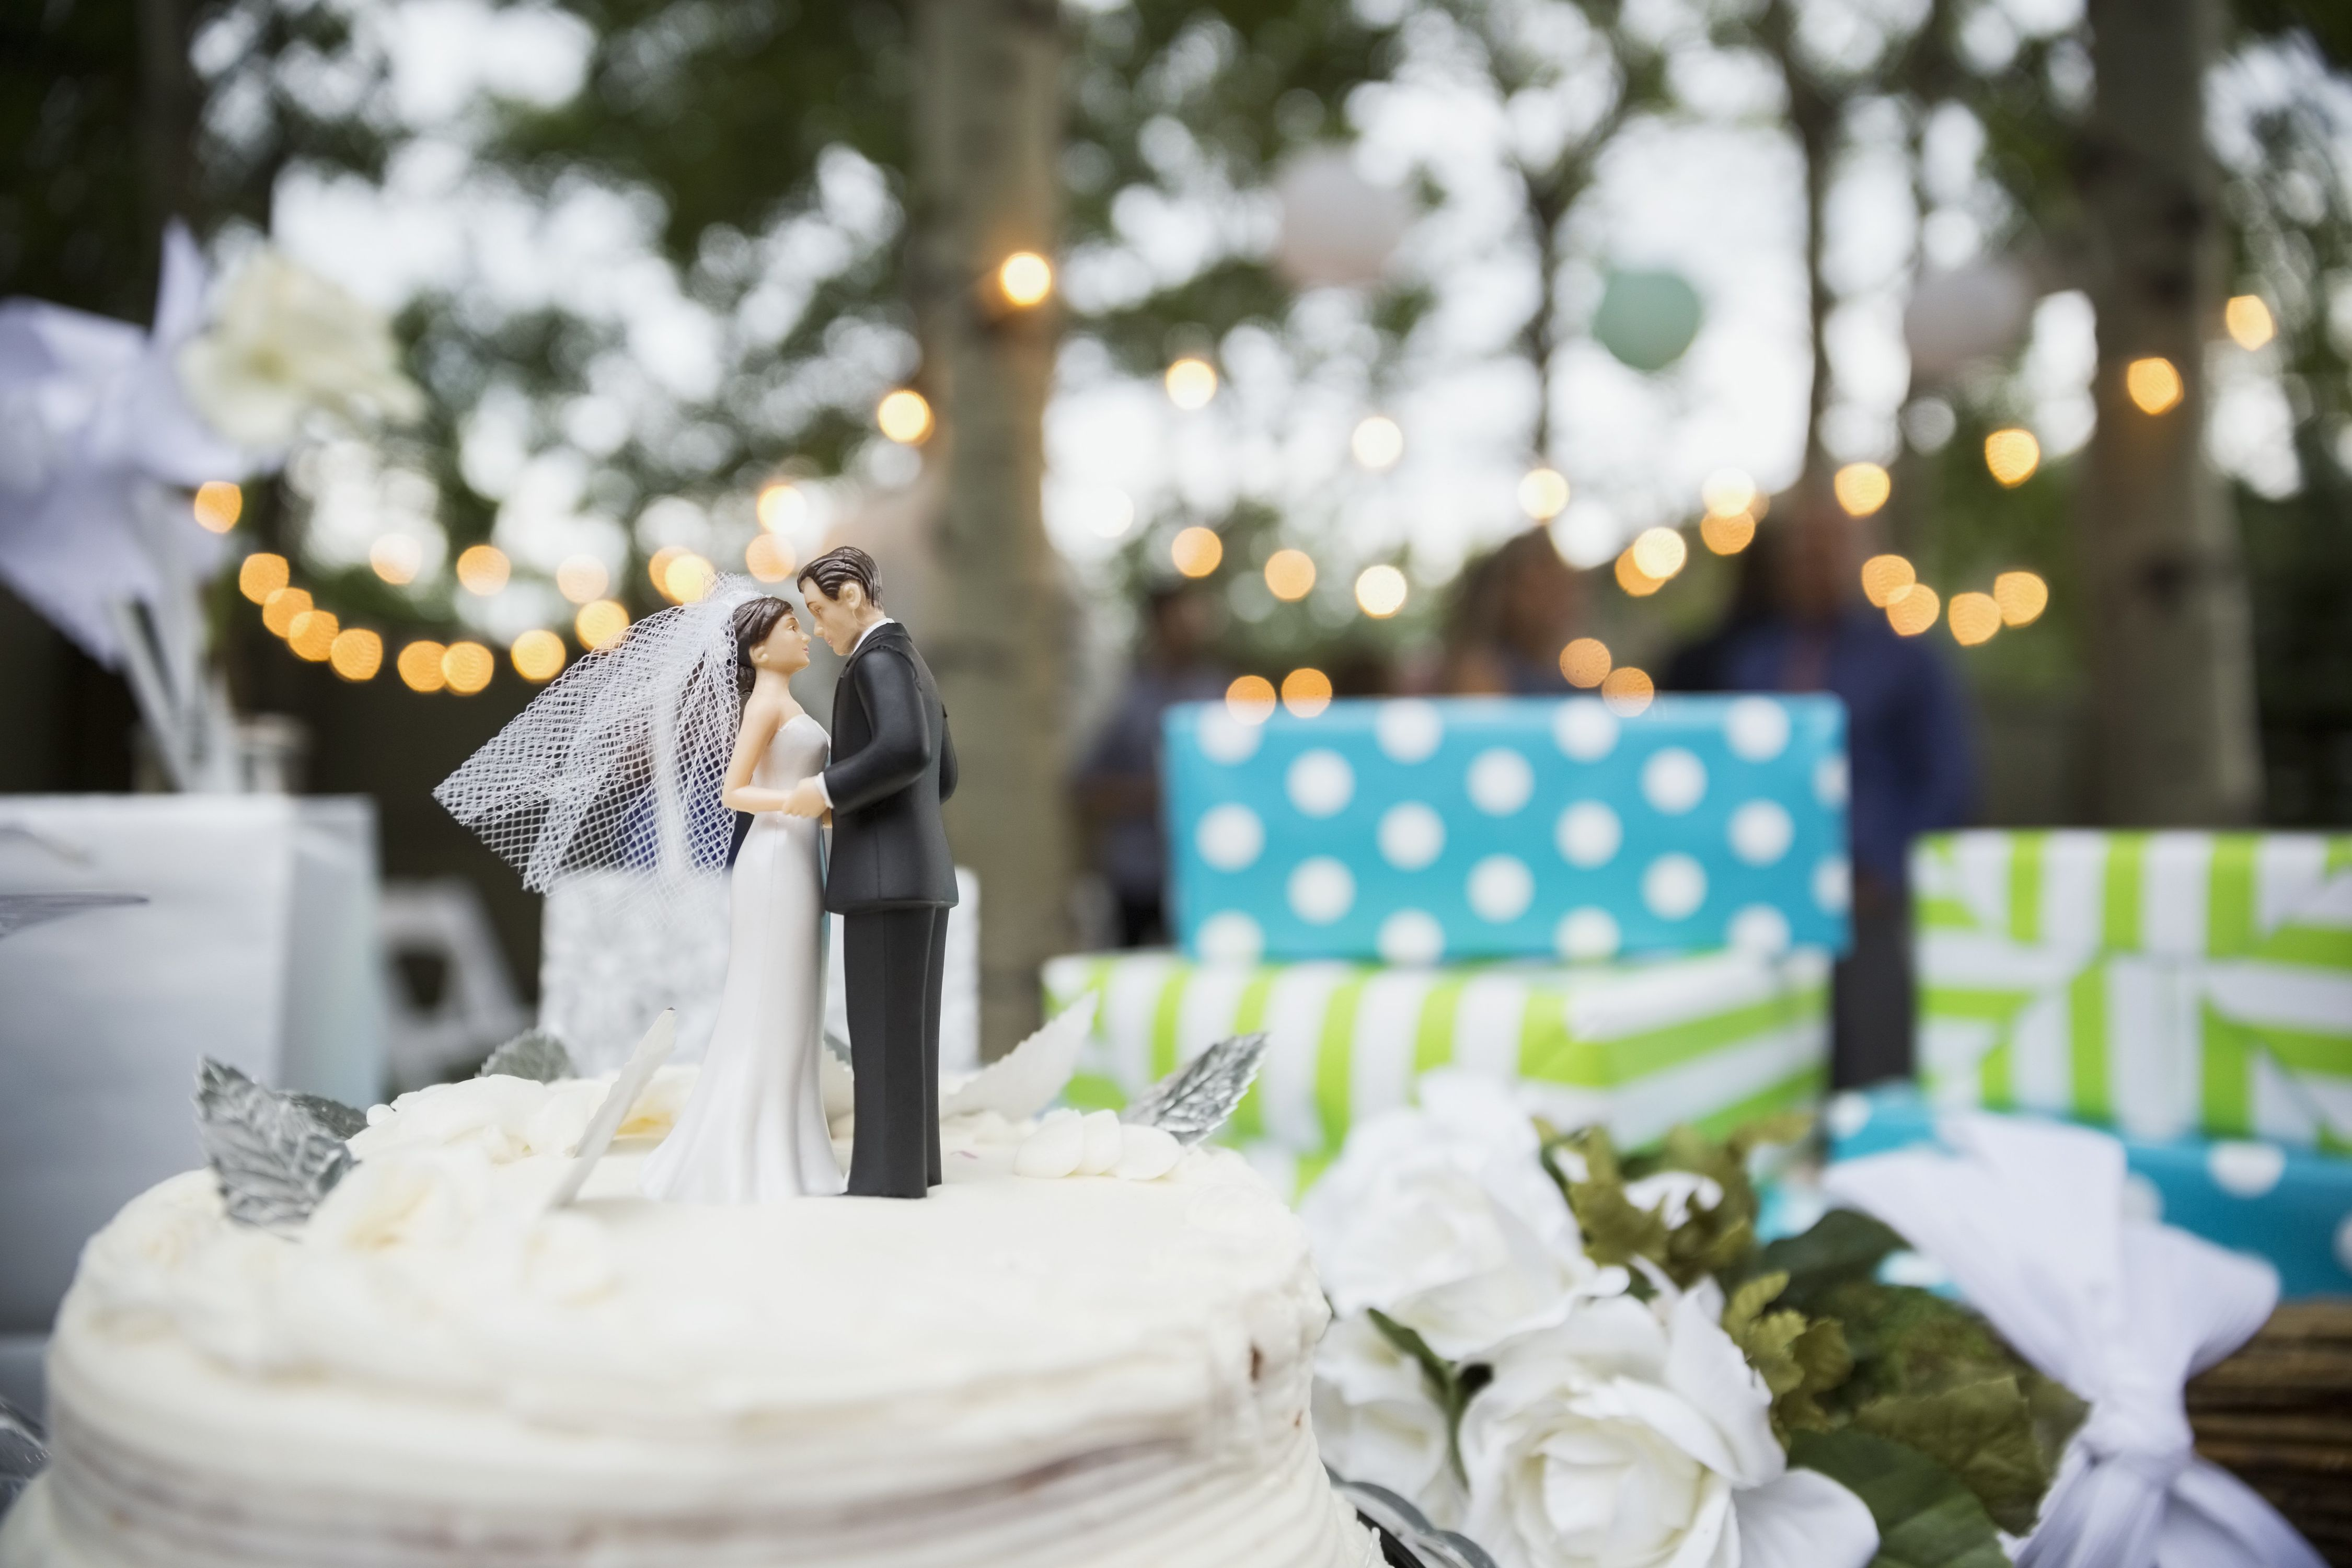 Wedding Gift Etiquette: Can I Bring A Gift To The Wedding